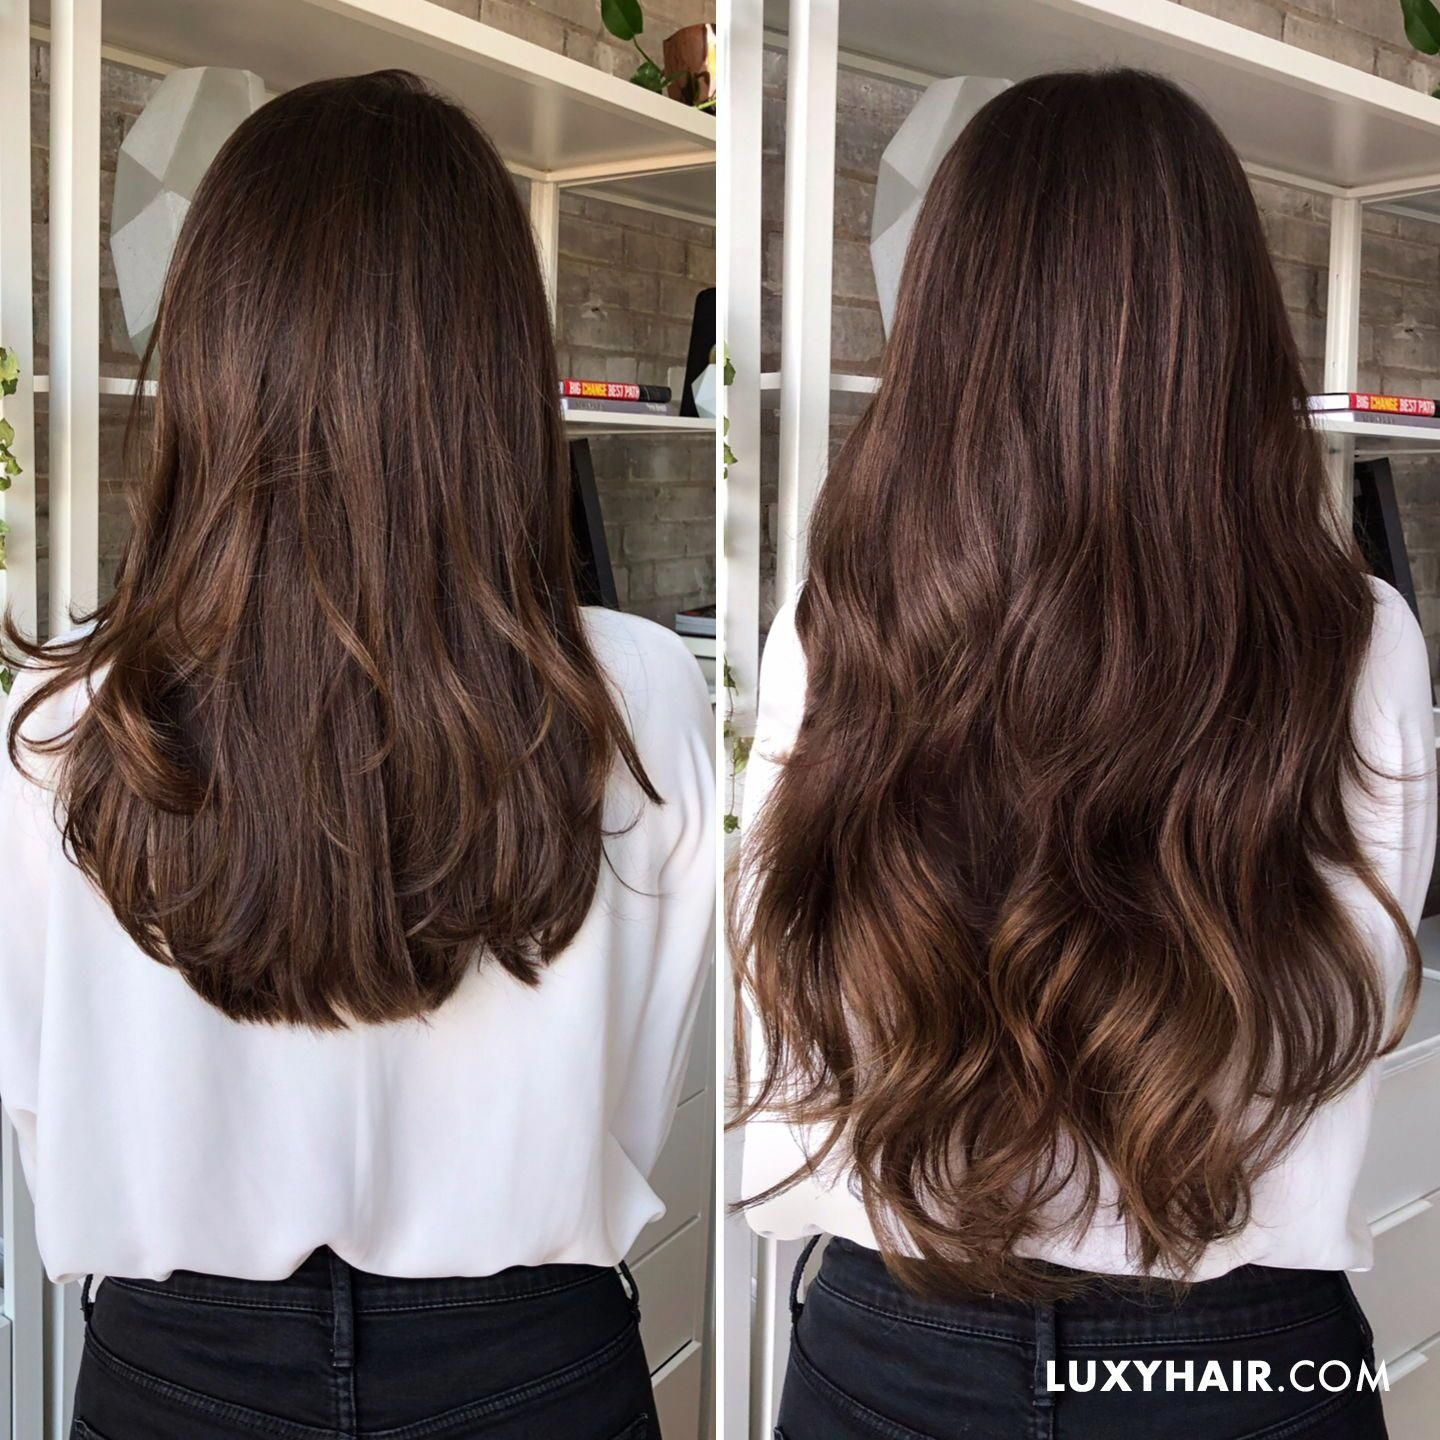 Luxy Hair Extensions In The Shade Chocolate Brown Brownhairbalayage In 2020 Brown Hair Shades Brown Hair Colors Brown Hair With Highlights